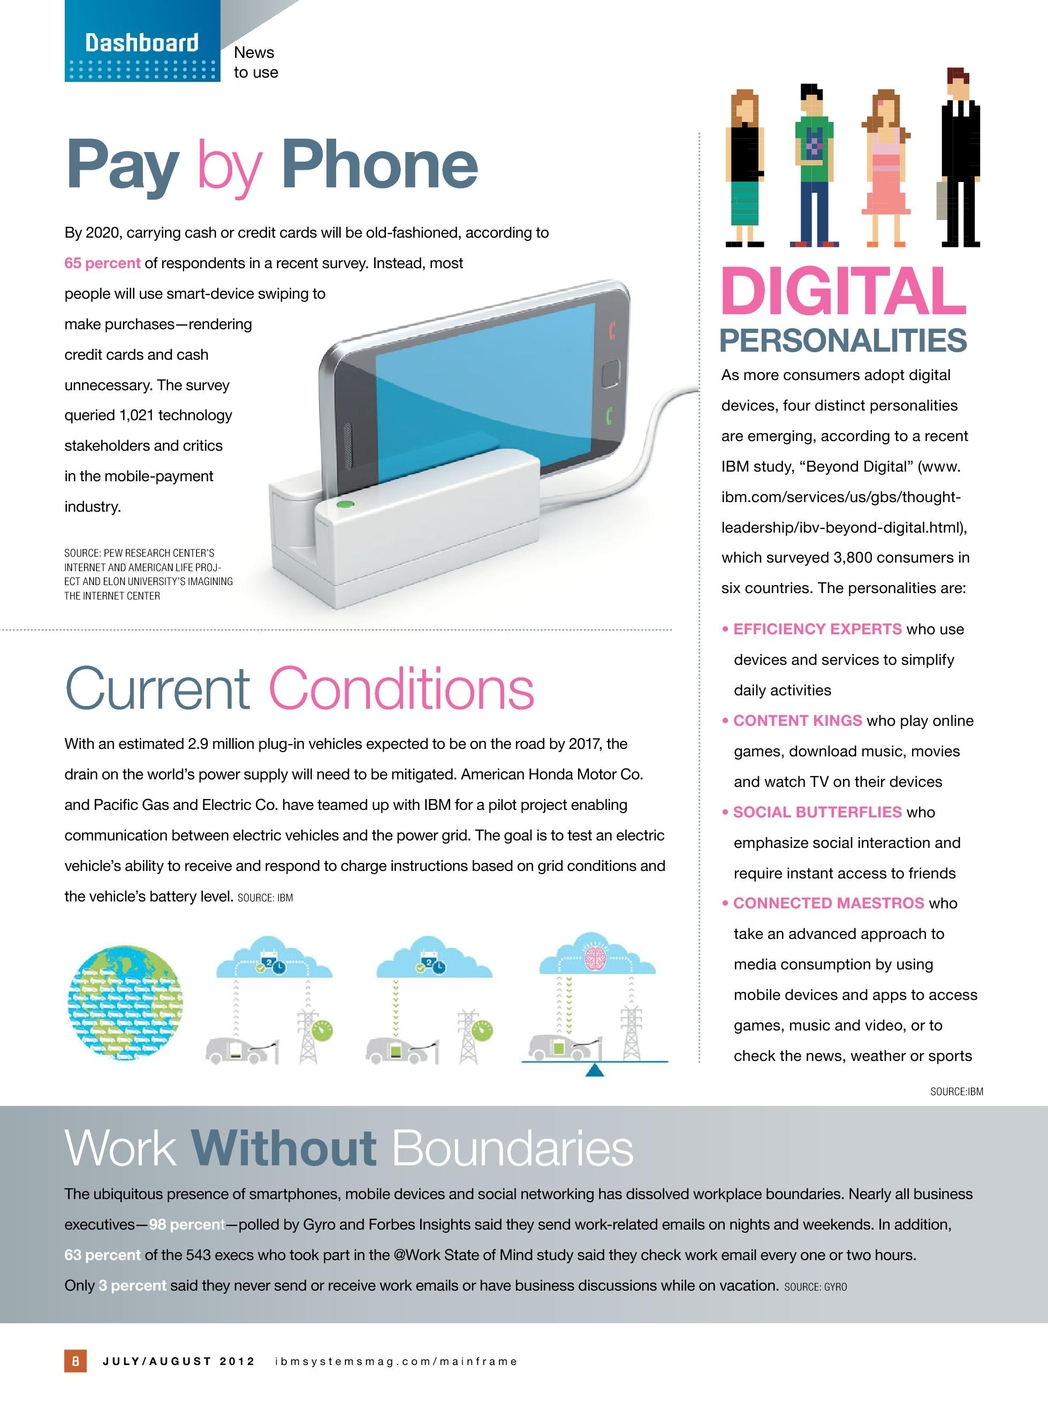 IBM Systems Magazine, Mainframe - July/August 2012